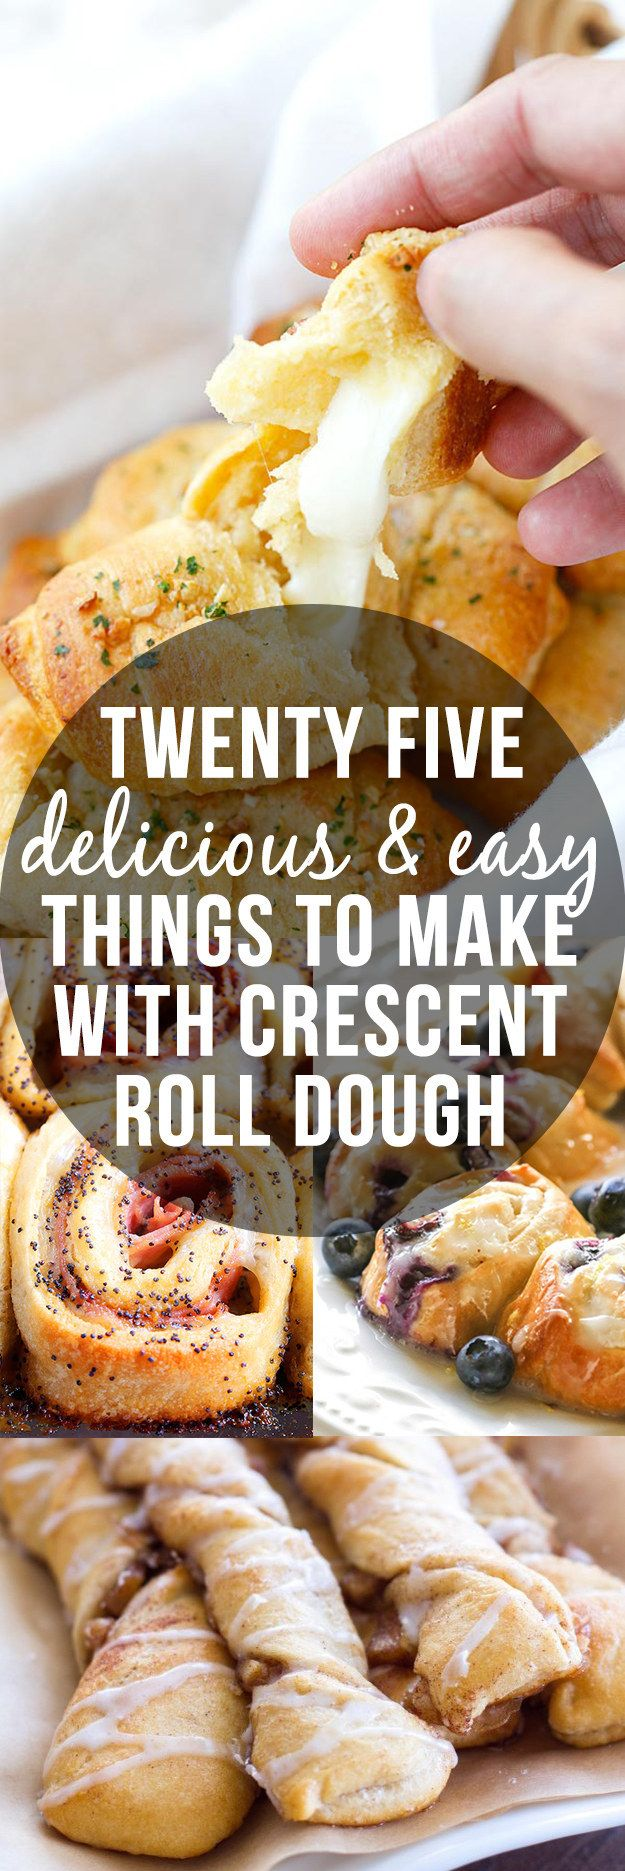 25 delicious and easy recipes to make with crescent roll dough! These snacks and desserts are way too easy to make and come out of the over as divine as ever.